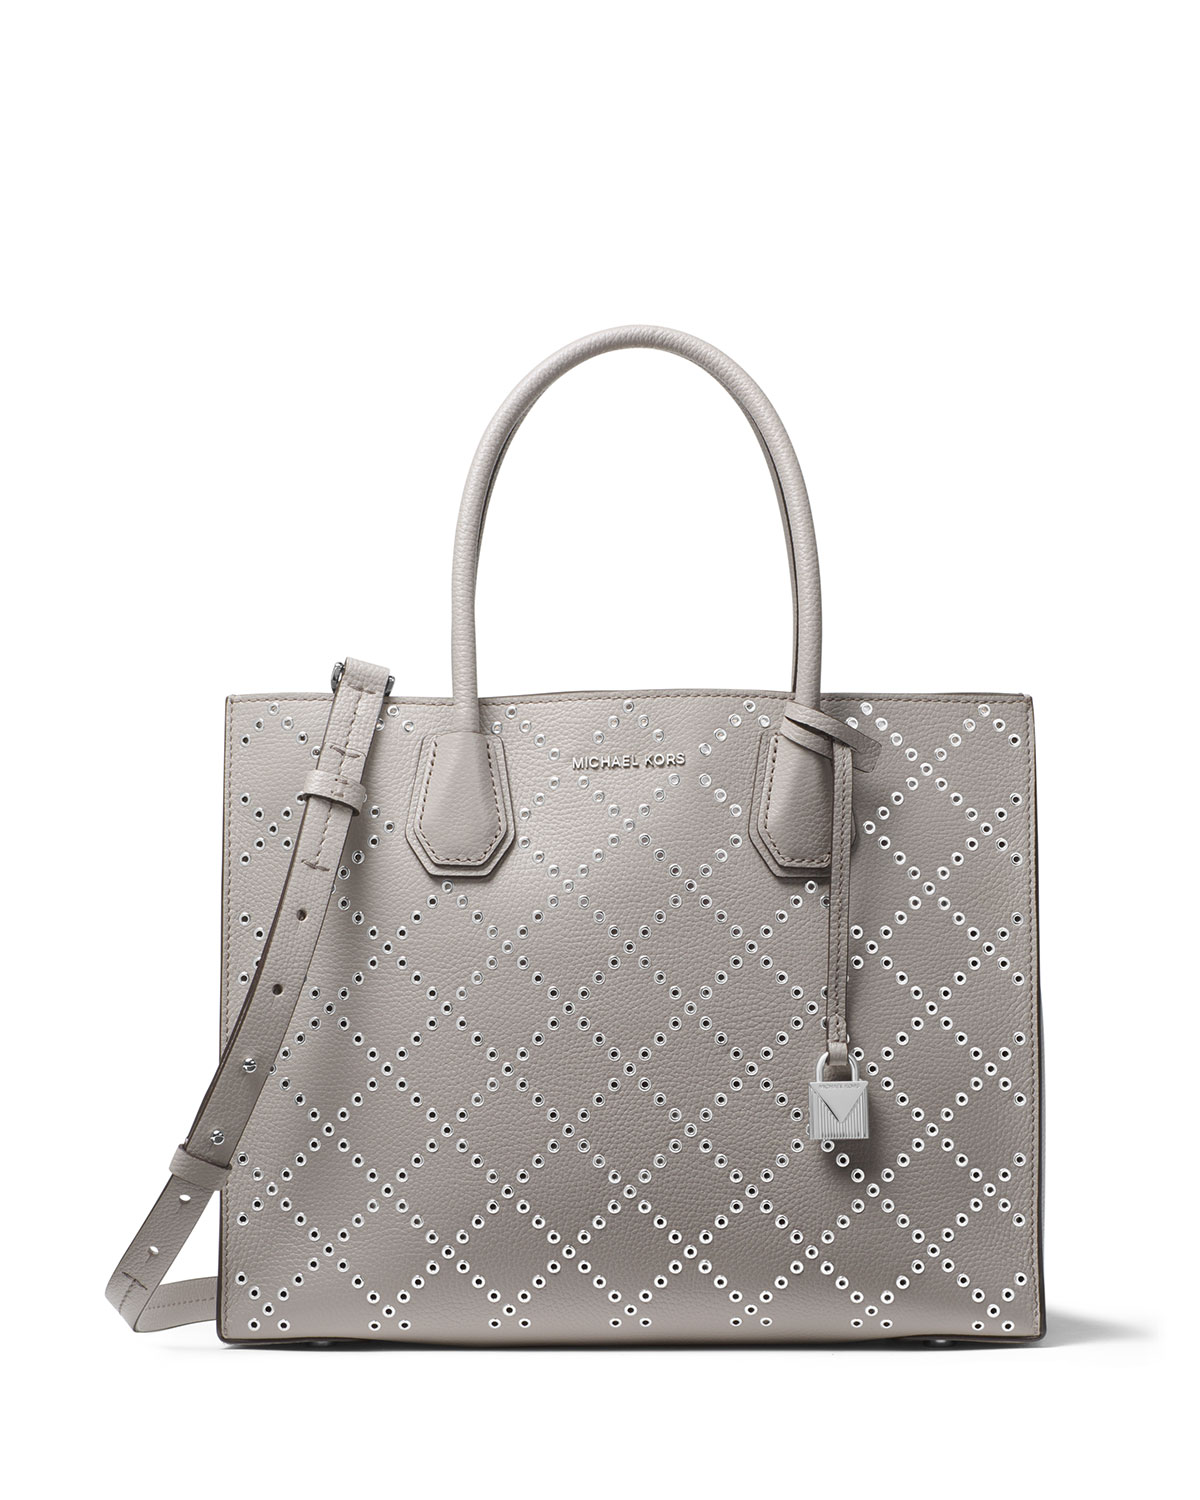 44e3faaf5465 MICHAEL Michael Kors Mercer Large Studded Convertible Tote Bag with  Rhodium-Tone Hardware